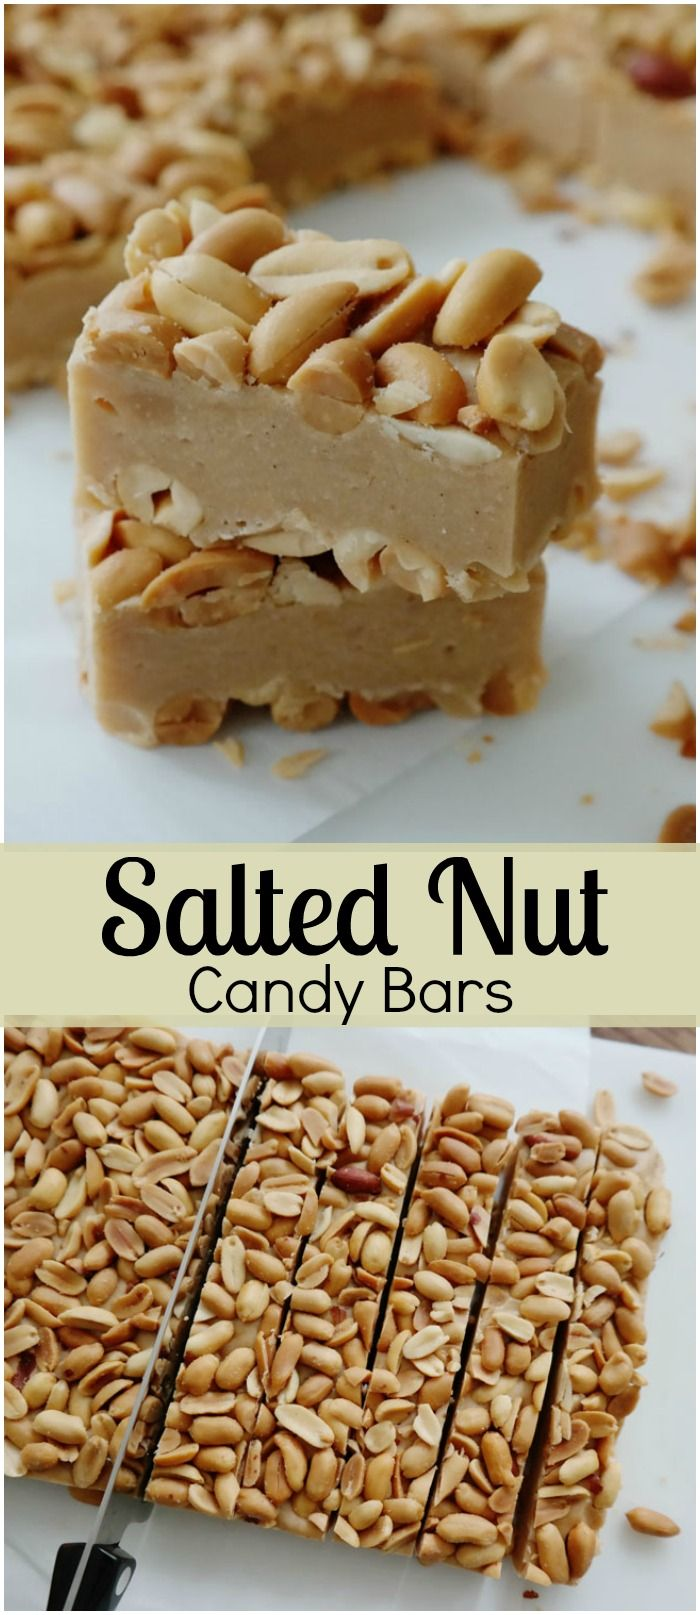 Salted Nut Candy Bars Salted Nut Candy Bars-you'll love the sweet, salty combination of these candy bars, just a few ingredients, no-bake and they make a great gift for the holidays!